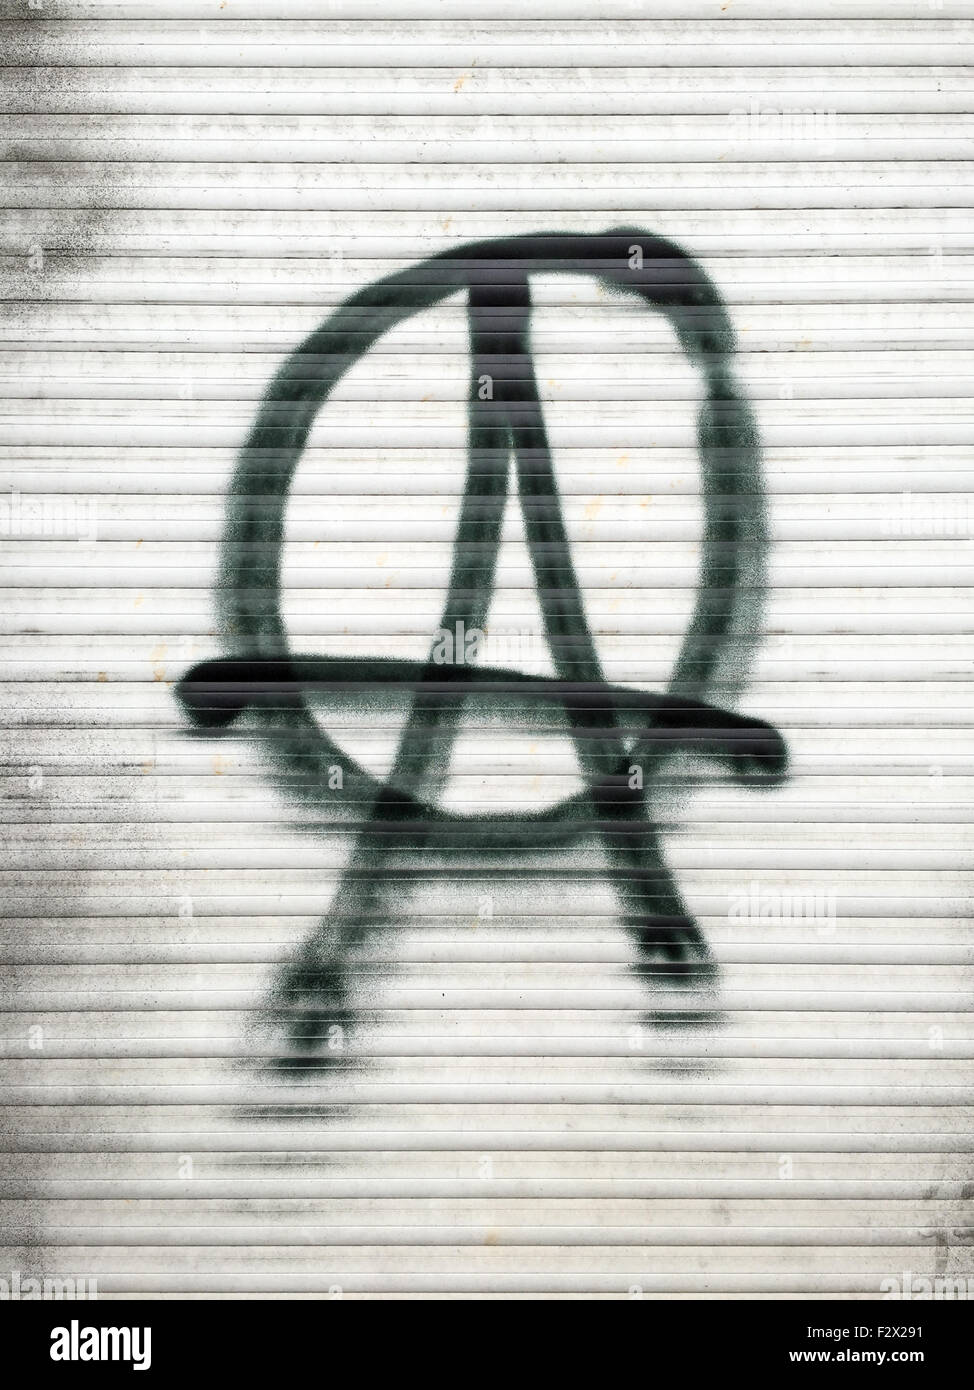 Anarchist symbol spray-painted on a shutter in Berlin, Germany. - Stock Image